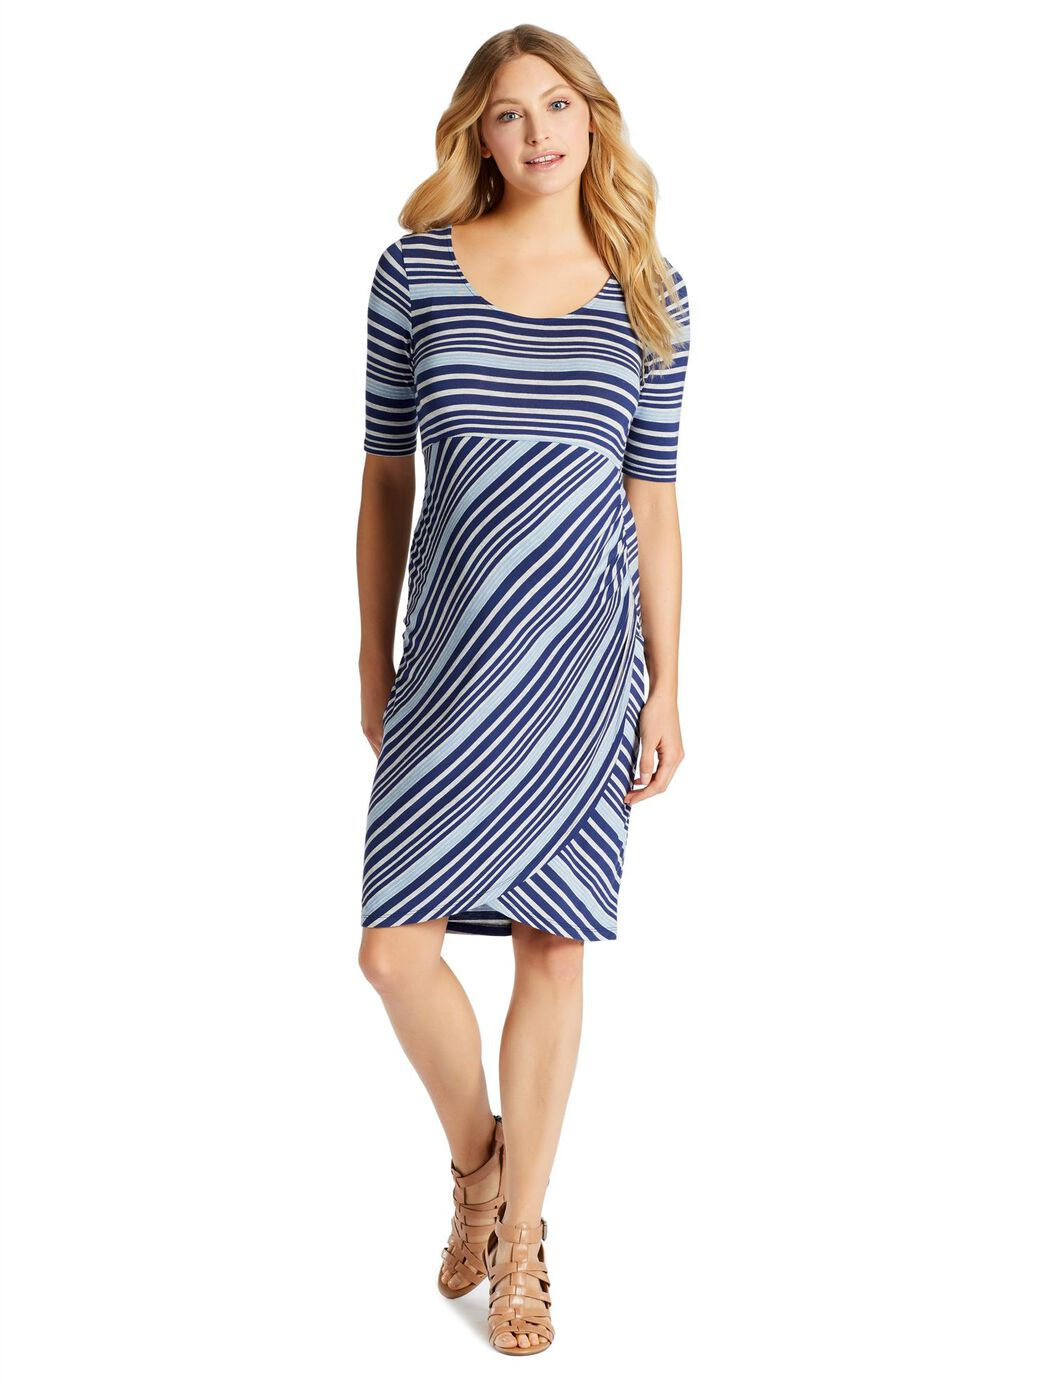 Jessica Simpson Super Soft Maternity Dress at Motherhood Maternity in Victor, NY | Tuggl